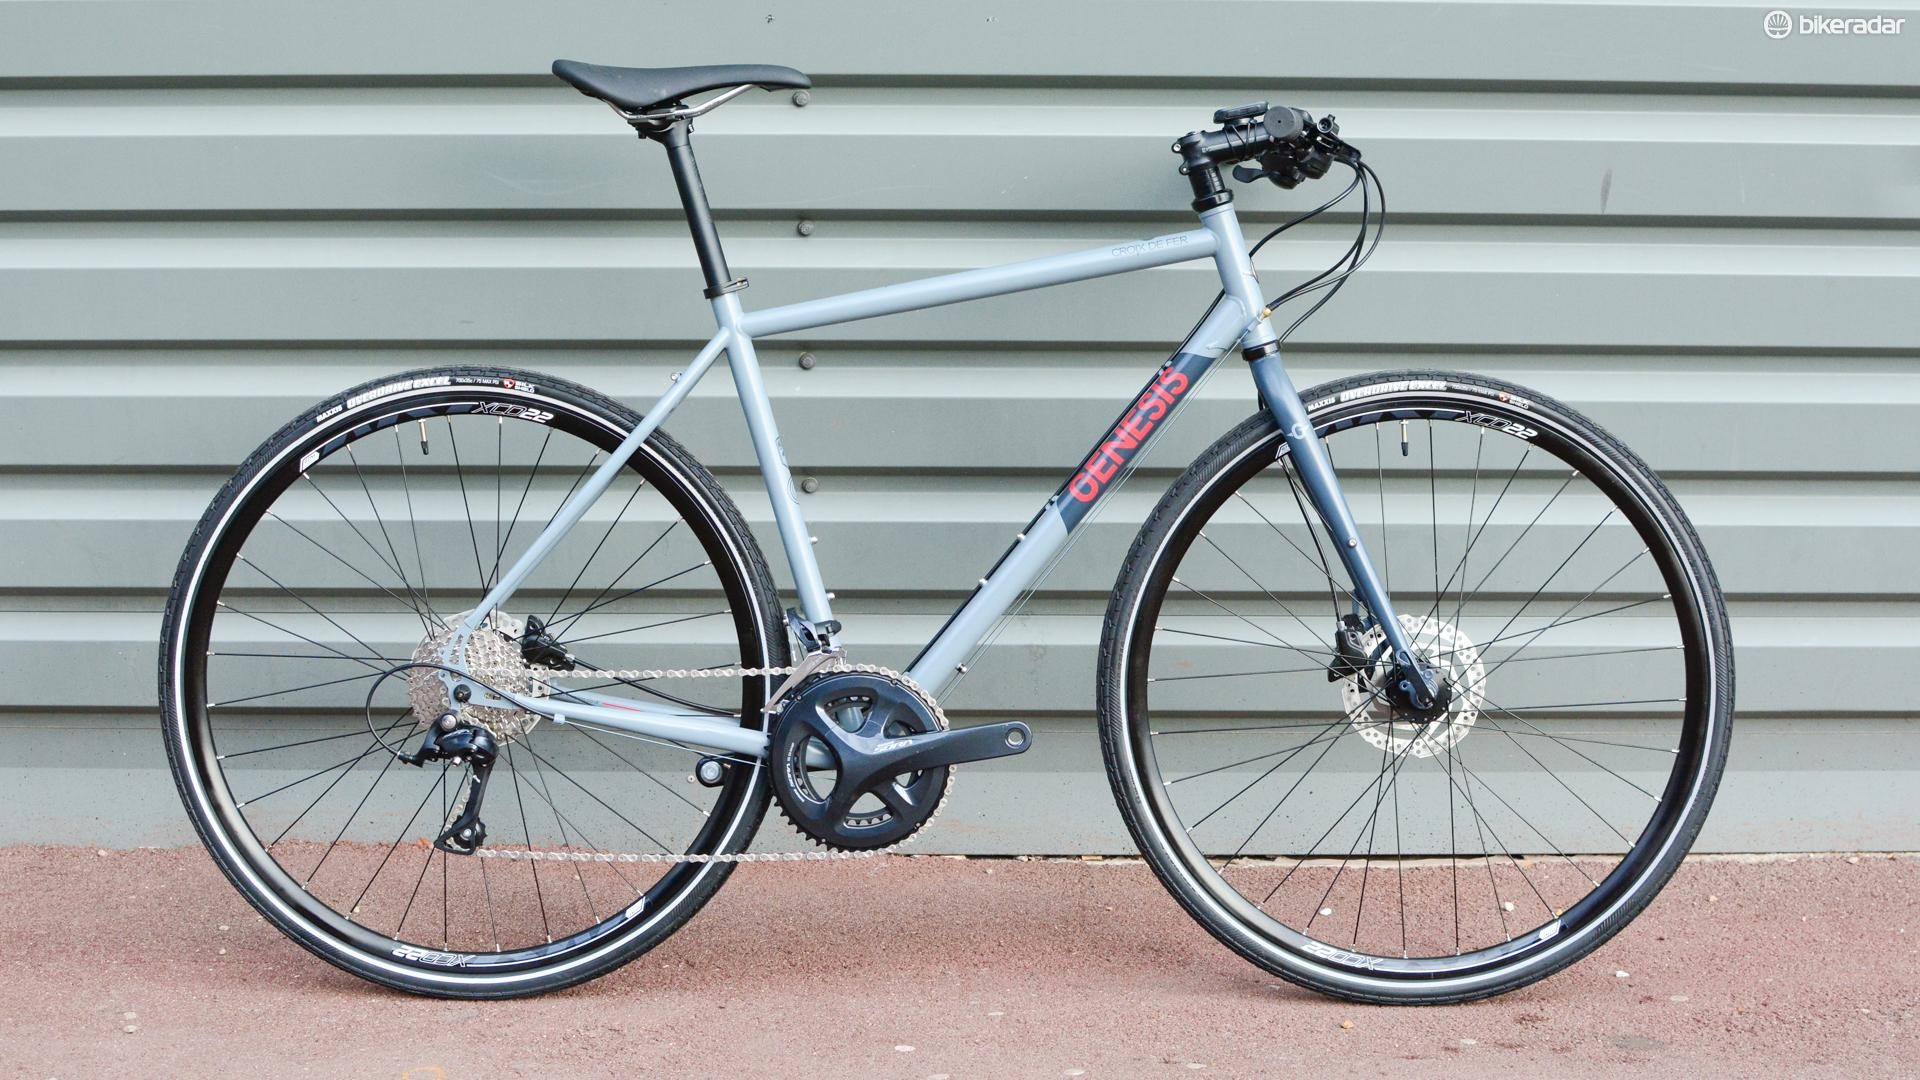 The Genesis Croix de Fer 10 FB looks perfect for upright commuting or touring